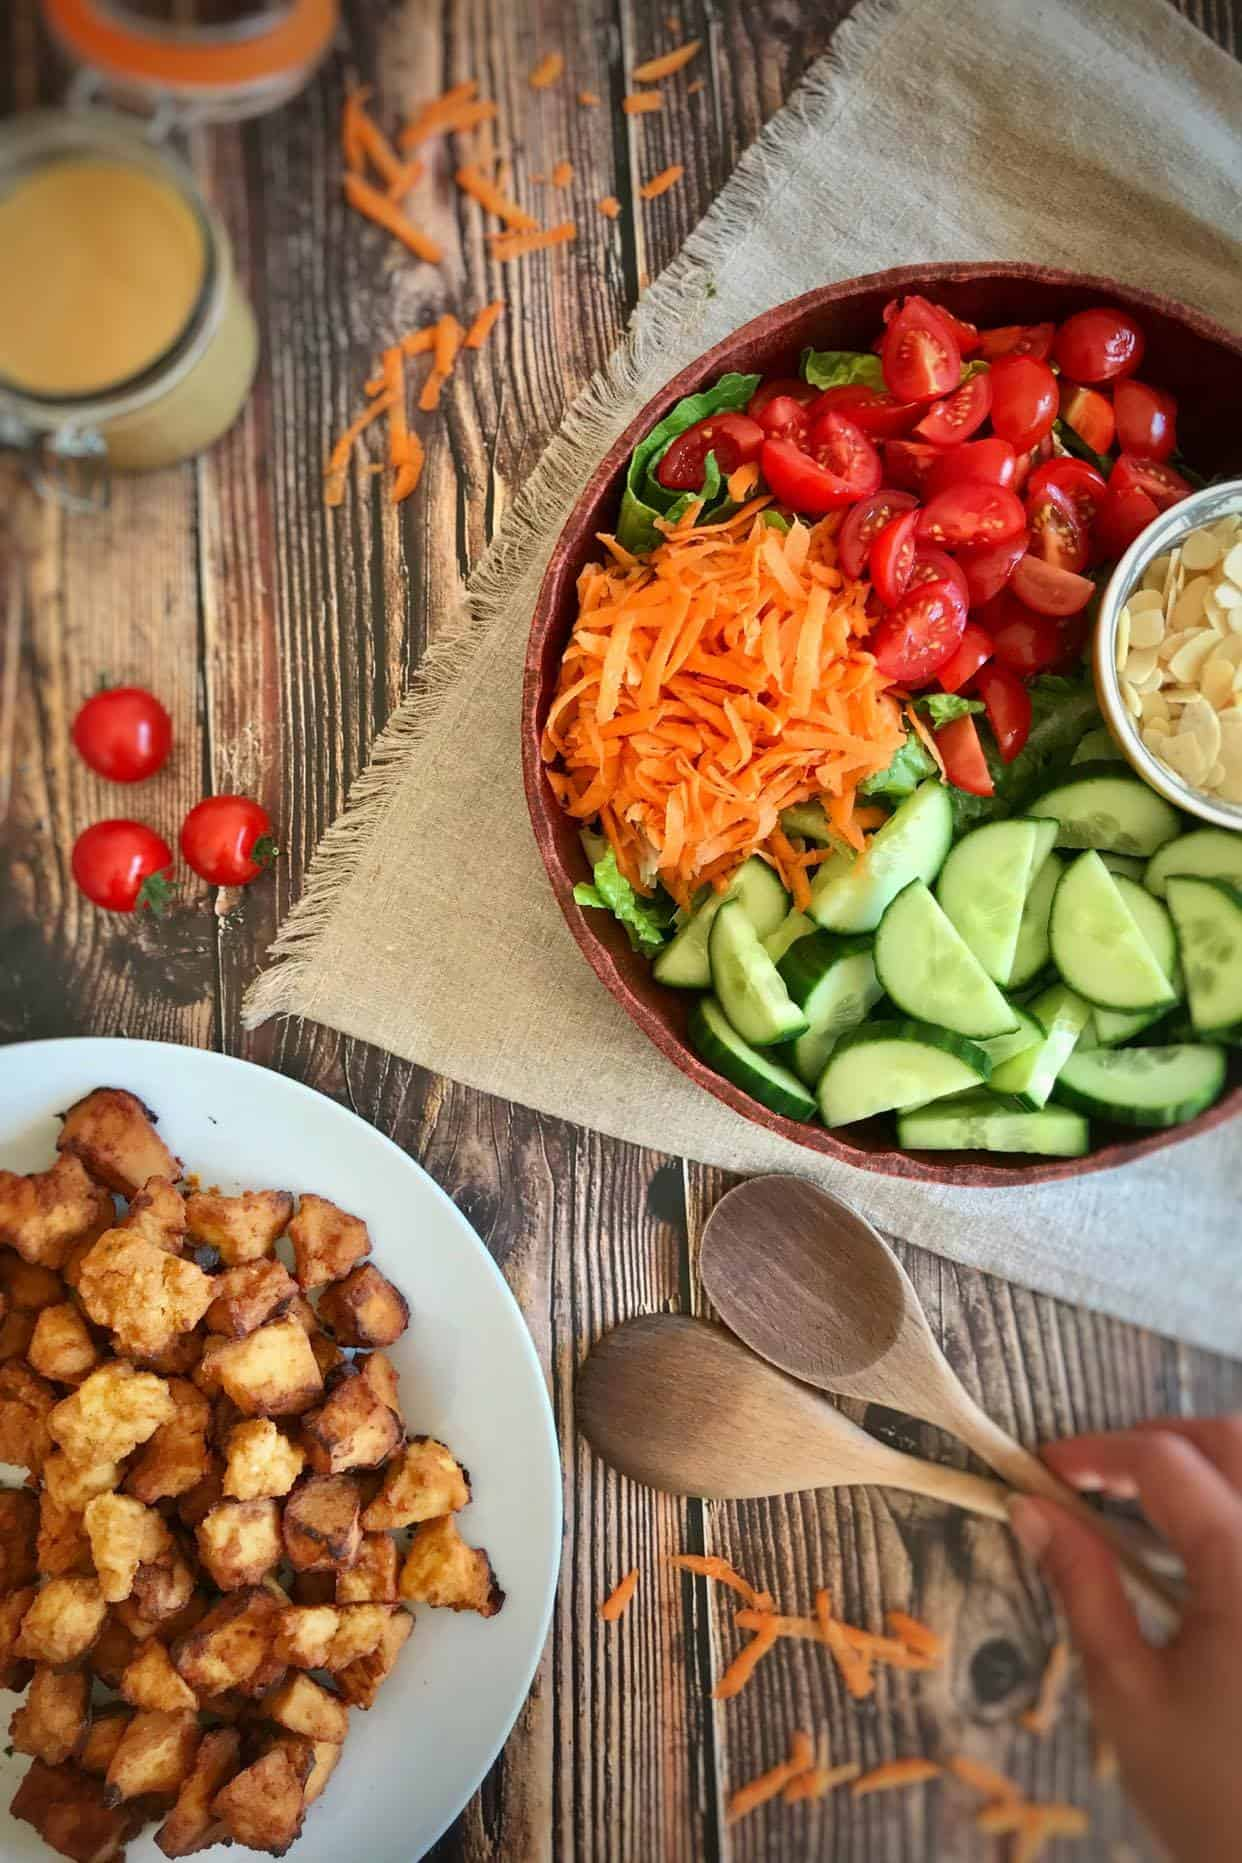 Hearty Country Salad with Tofu Nuggets & Vegan Honey Mustard Dressing